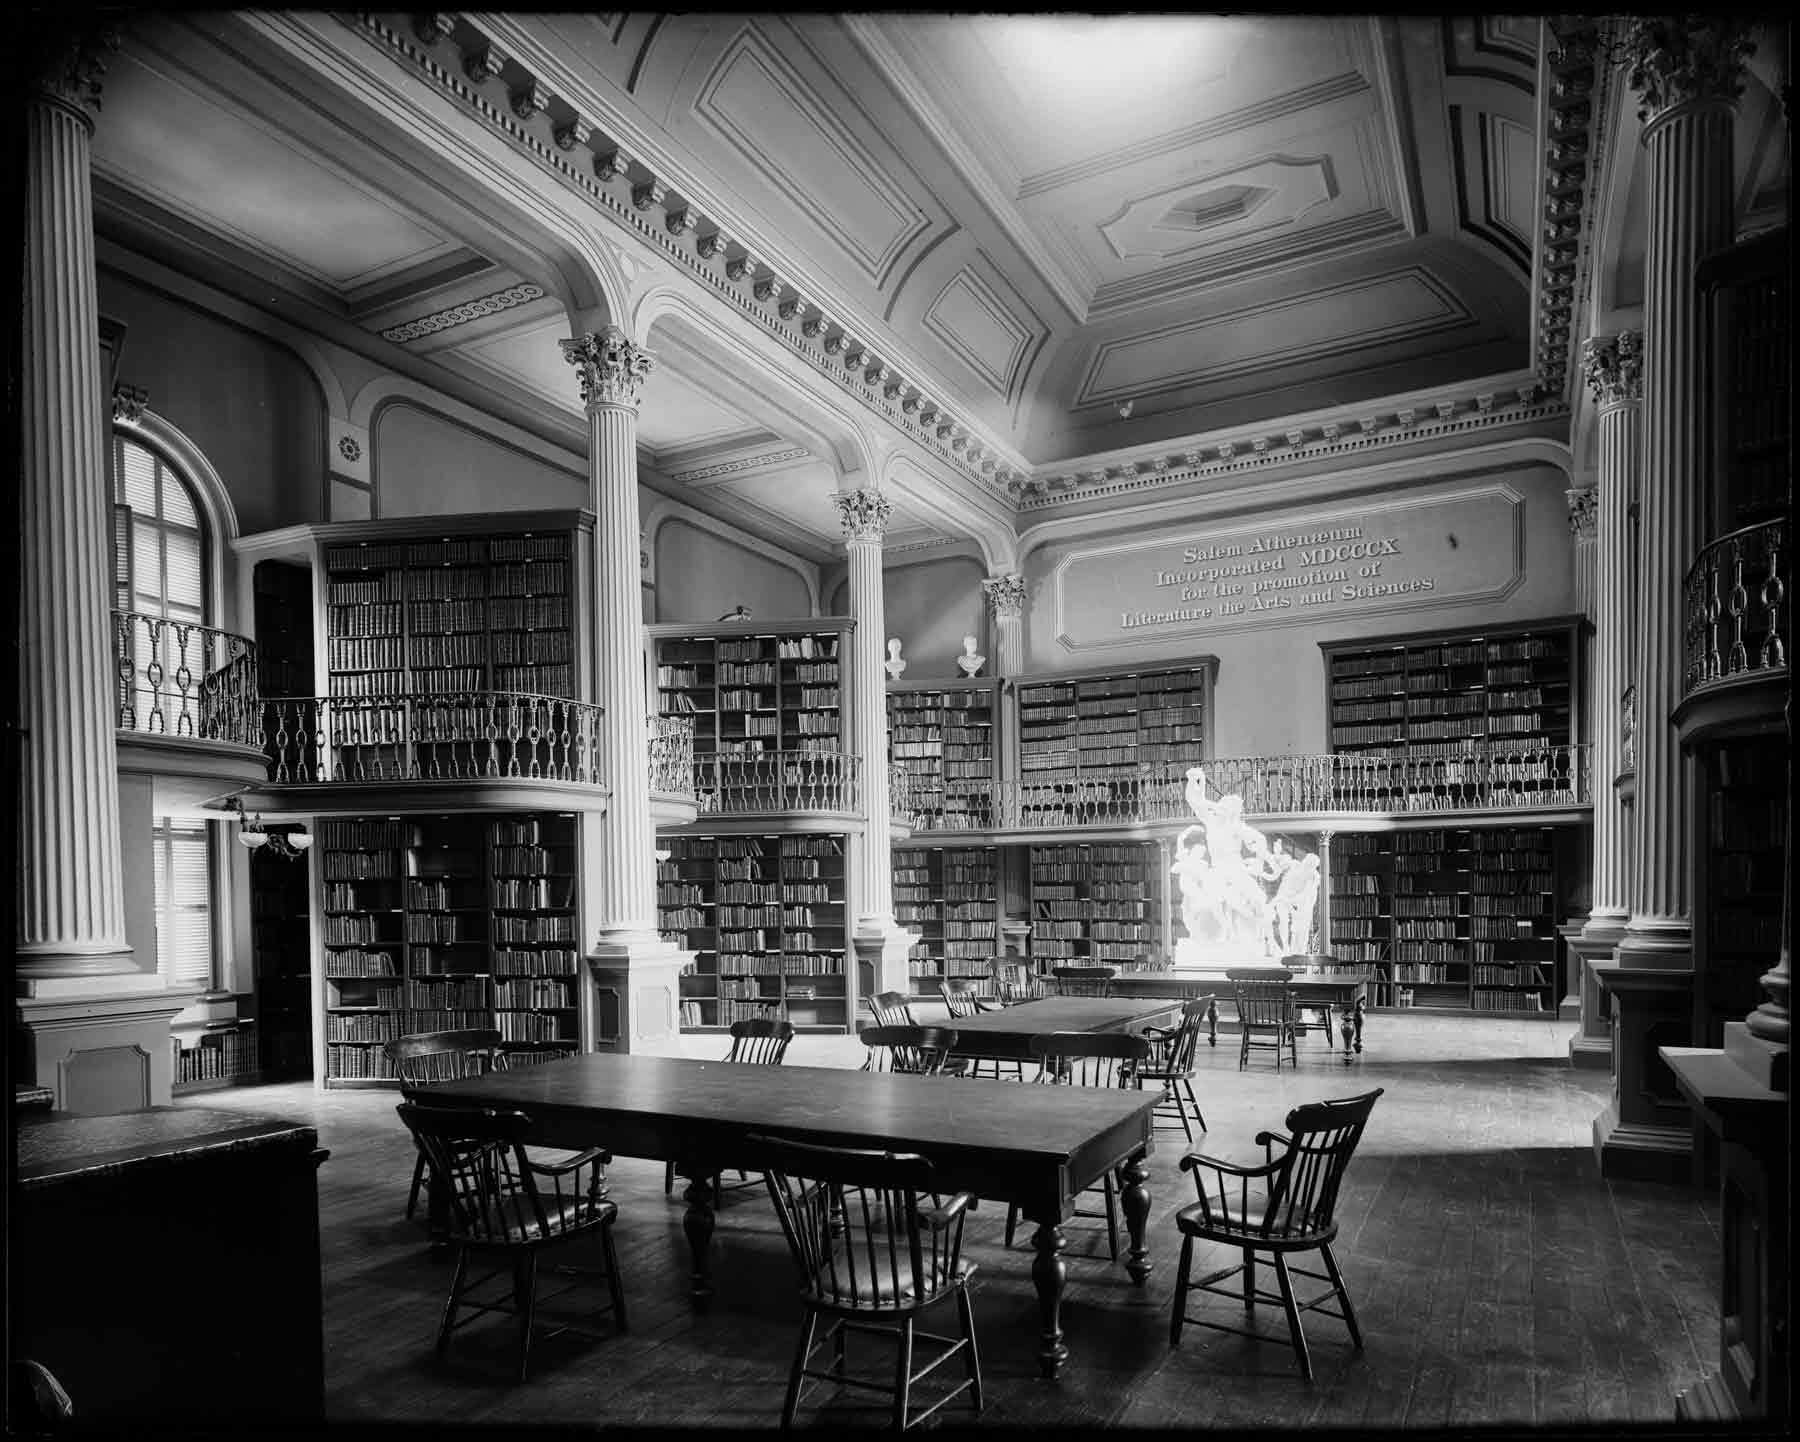 An old photograph of The Reading Room in Plummer Hall